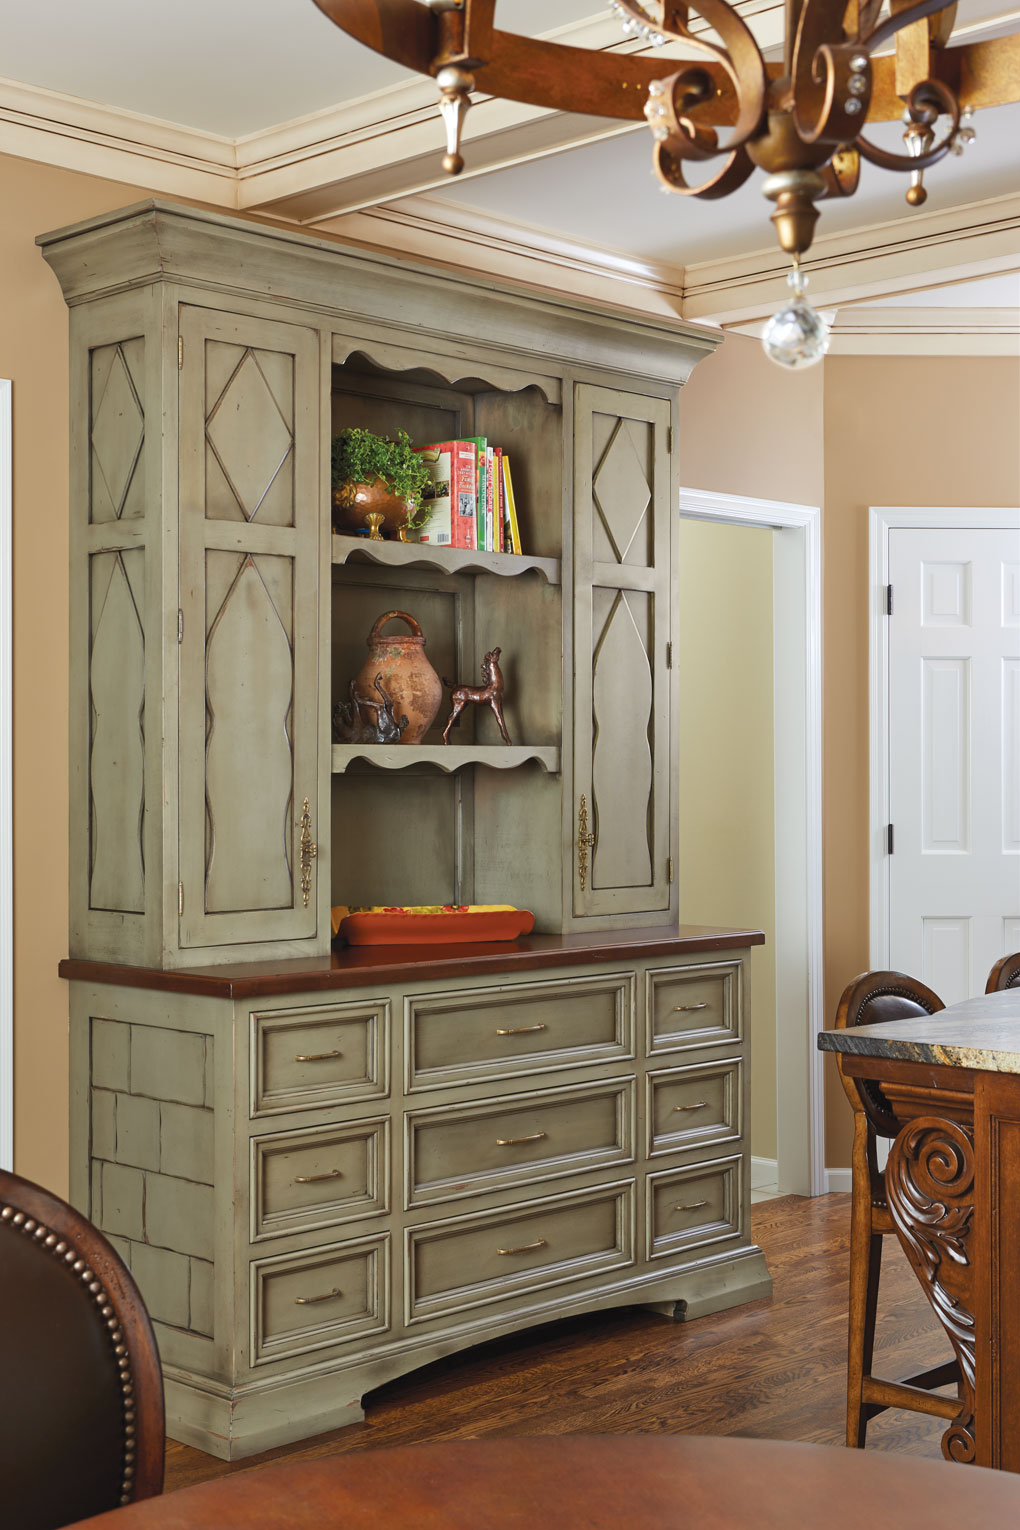 A stand-alone cabinet plays the role of utility player in a kitchen.